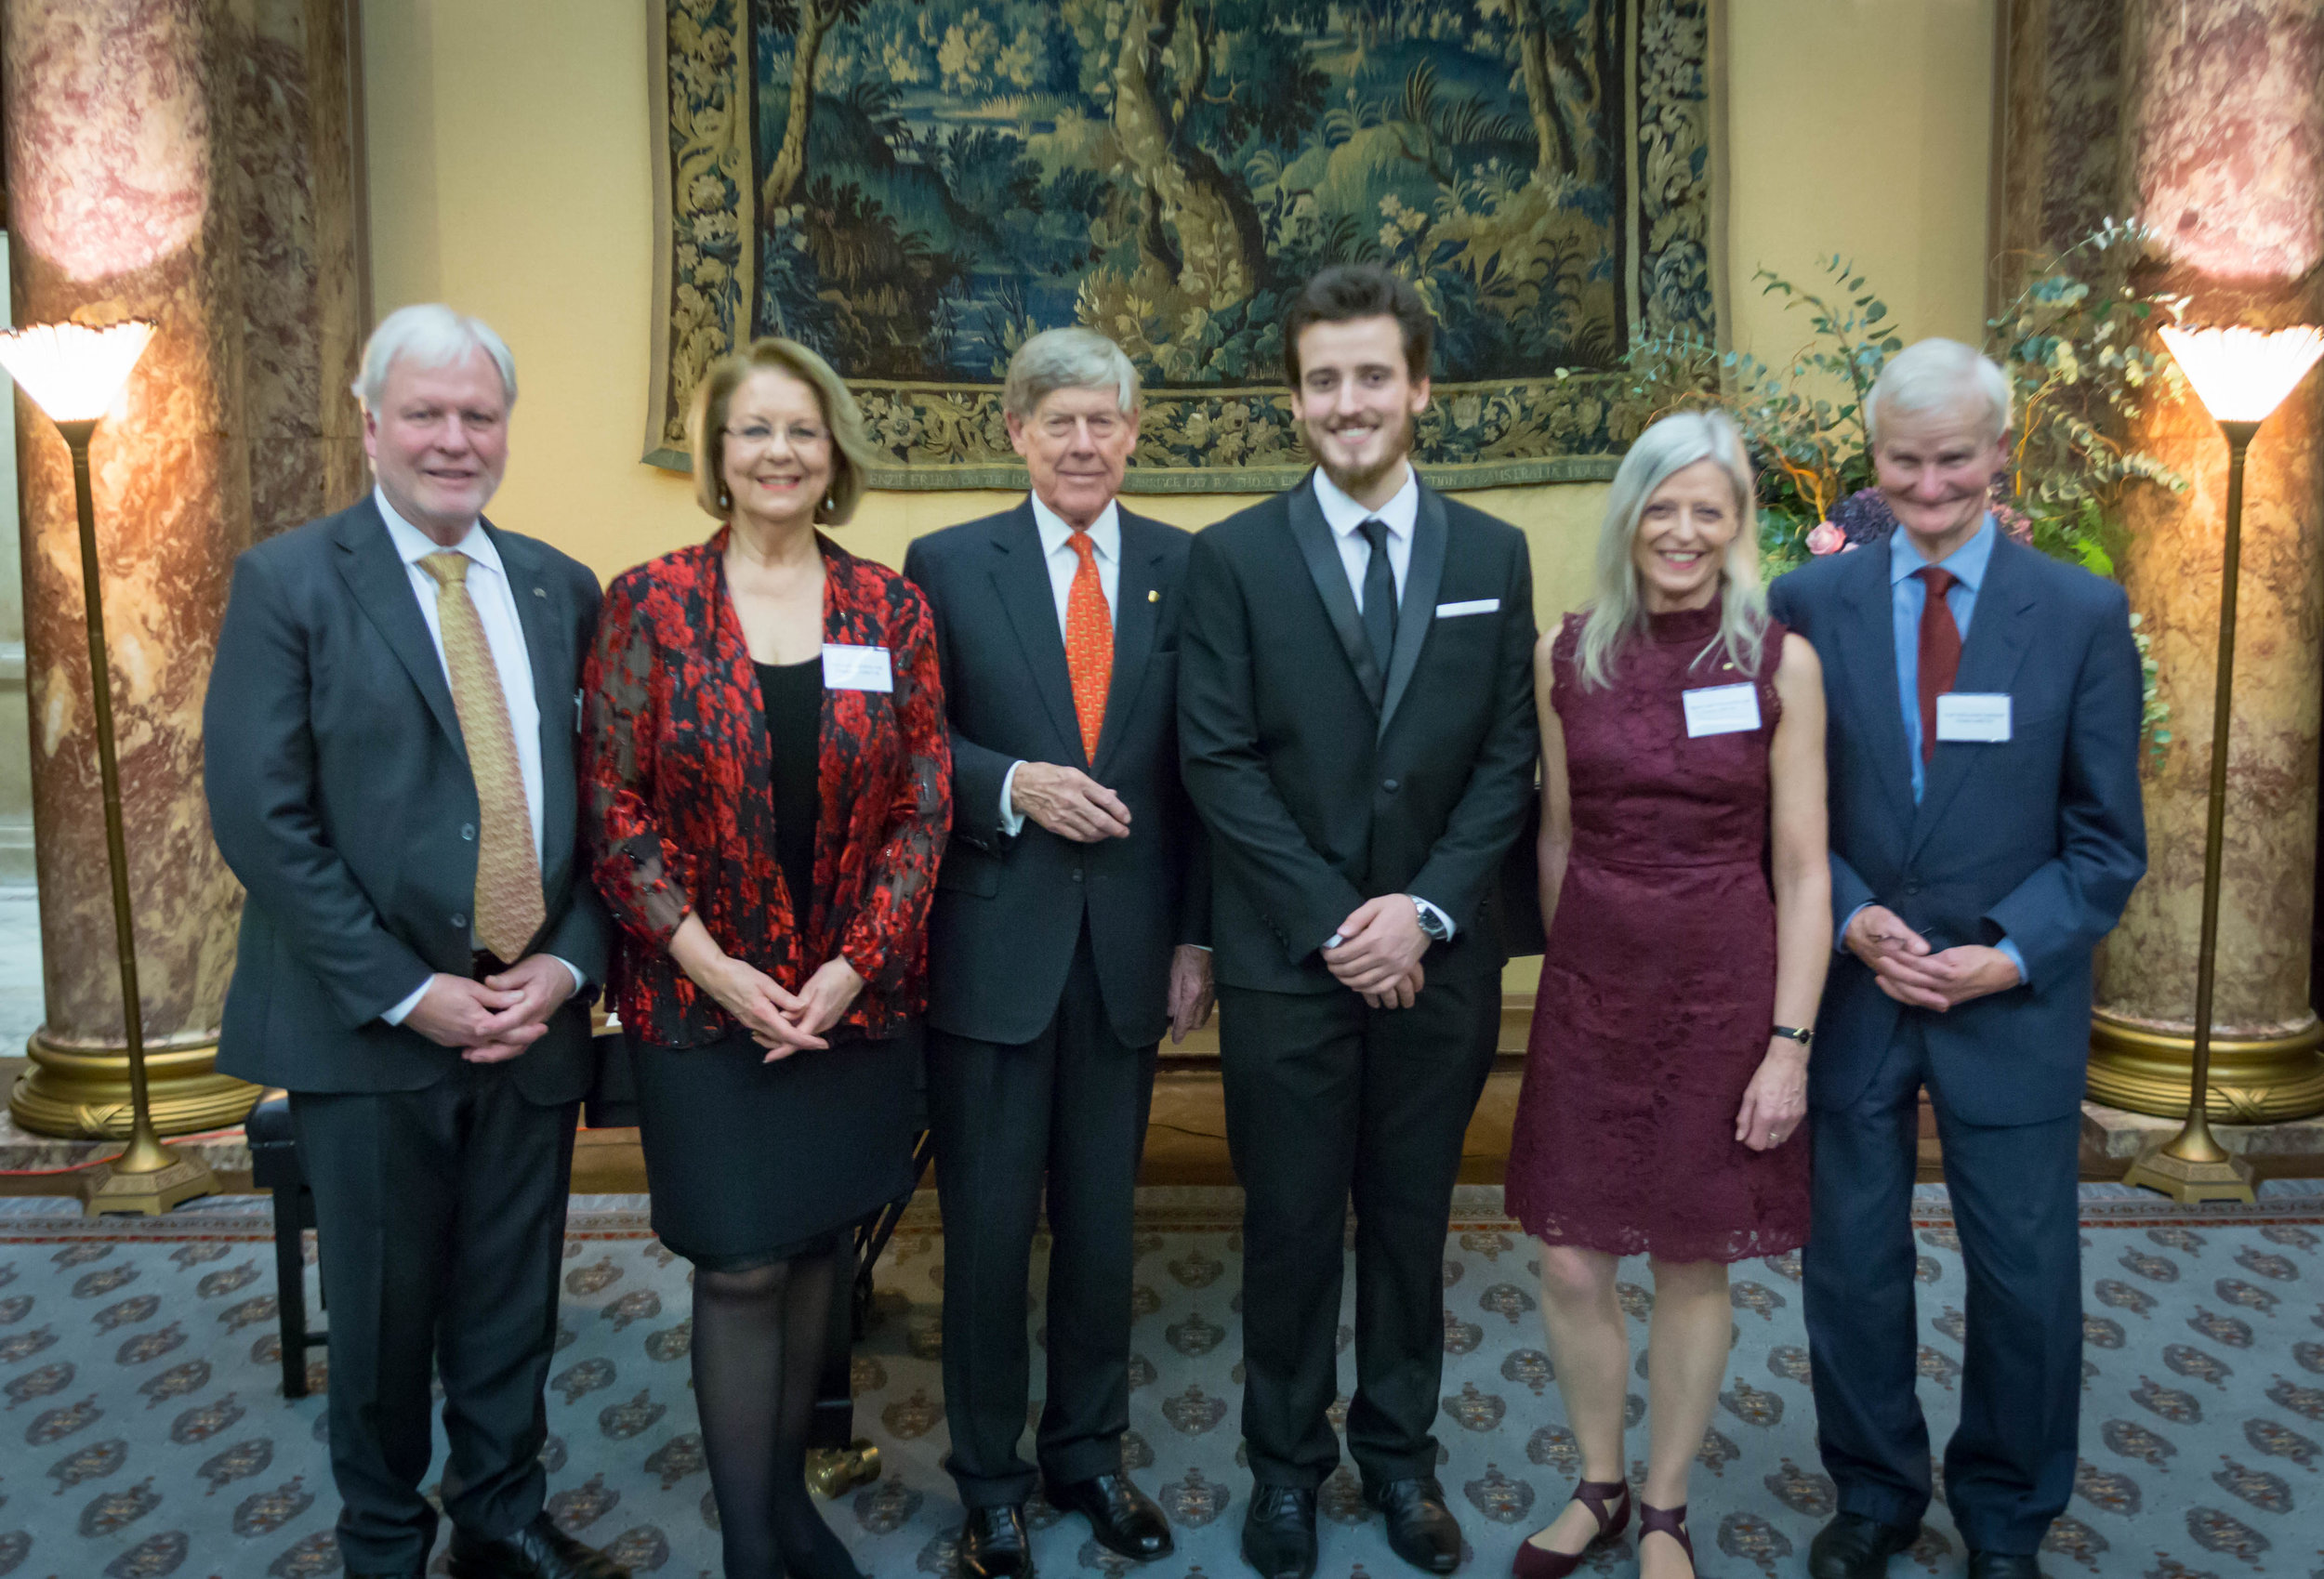 Trustees Dennis Muirhead, Yvonne Kenny, Lord Broers, Margaret Mayston & Prof. Cornish with AMF UK 2016 Trustees awardee James Yan (4th from left)